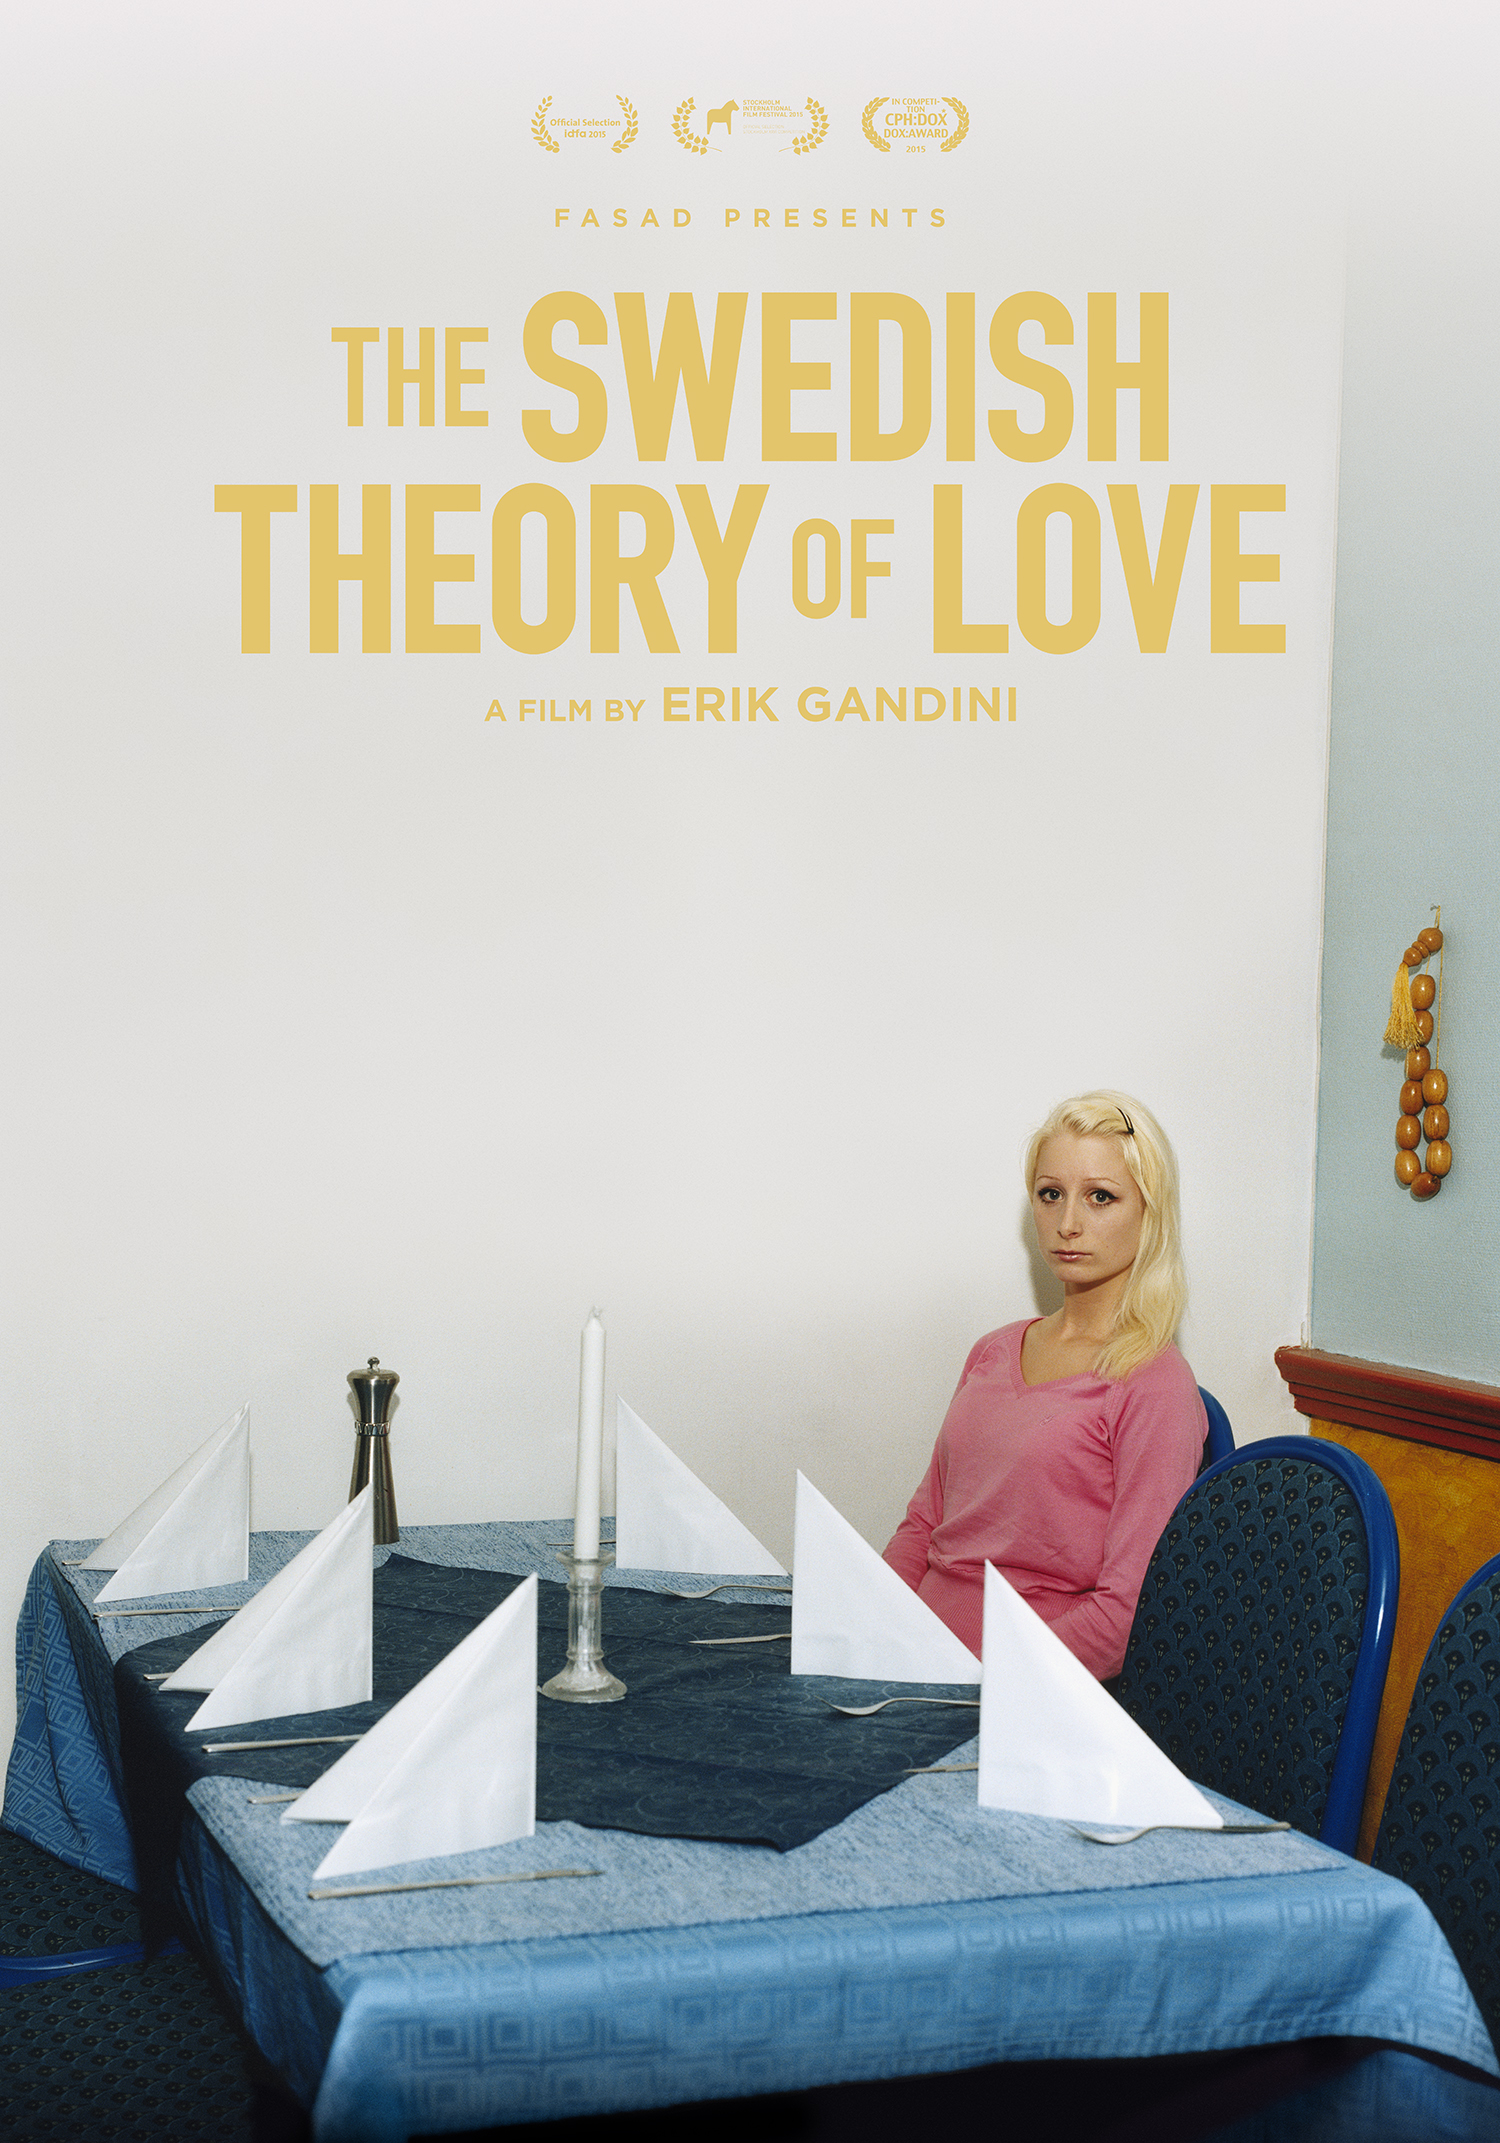 The Swedish Theory of Love Official International Movie Poster (Nonstop Entertainment)